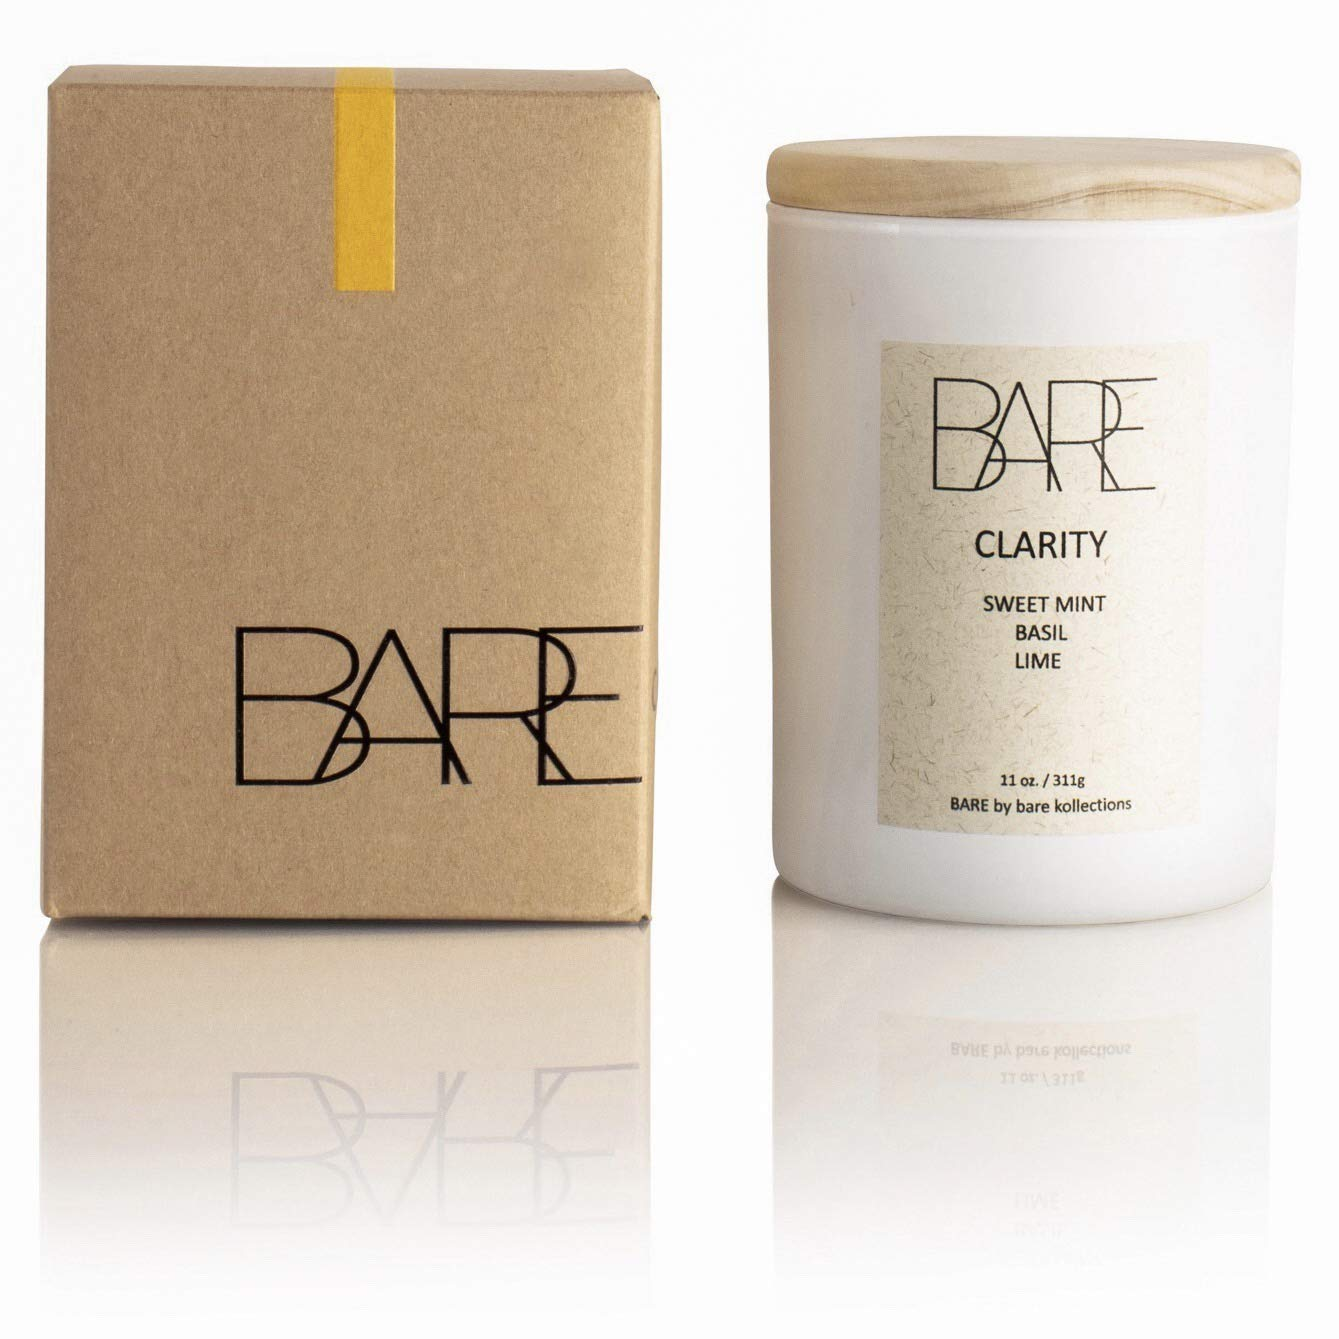 BARE KOLLECTIONS Clarity Candle Scented - 11oz Sweet Mint, Basil Lime, All-Natural Coconut Soy Luxury Jar Candle | Long Lasting | Aromatherapy Candle | Hand Poured